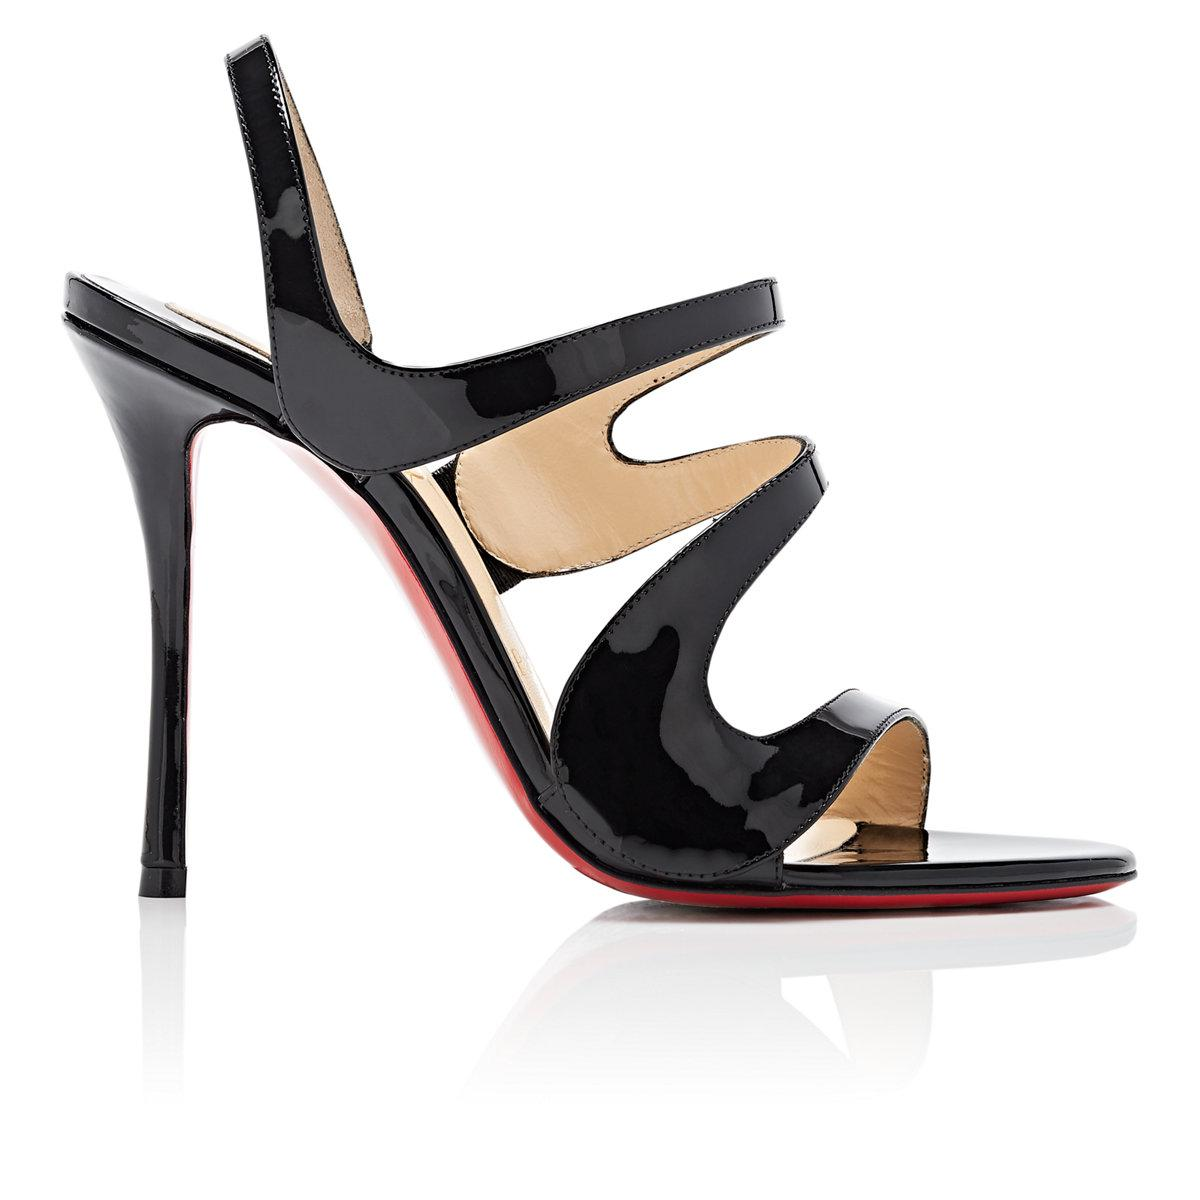 Outlet Best Store To Get Cheap Shopping Online Womens Vavazou Patent Leather Sandals Christian Louboutin Natural And Freely Cheap Sale Big Sale Cheap Sale Browse qRVFFKNjdW